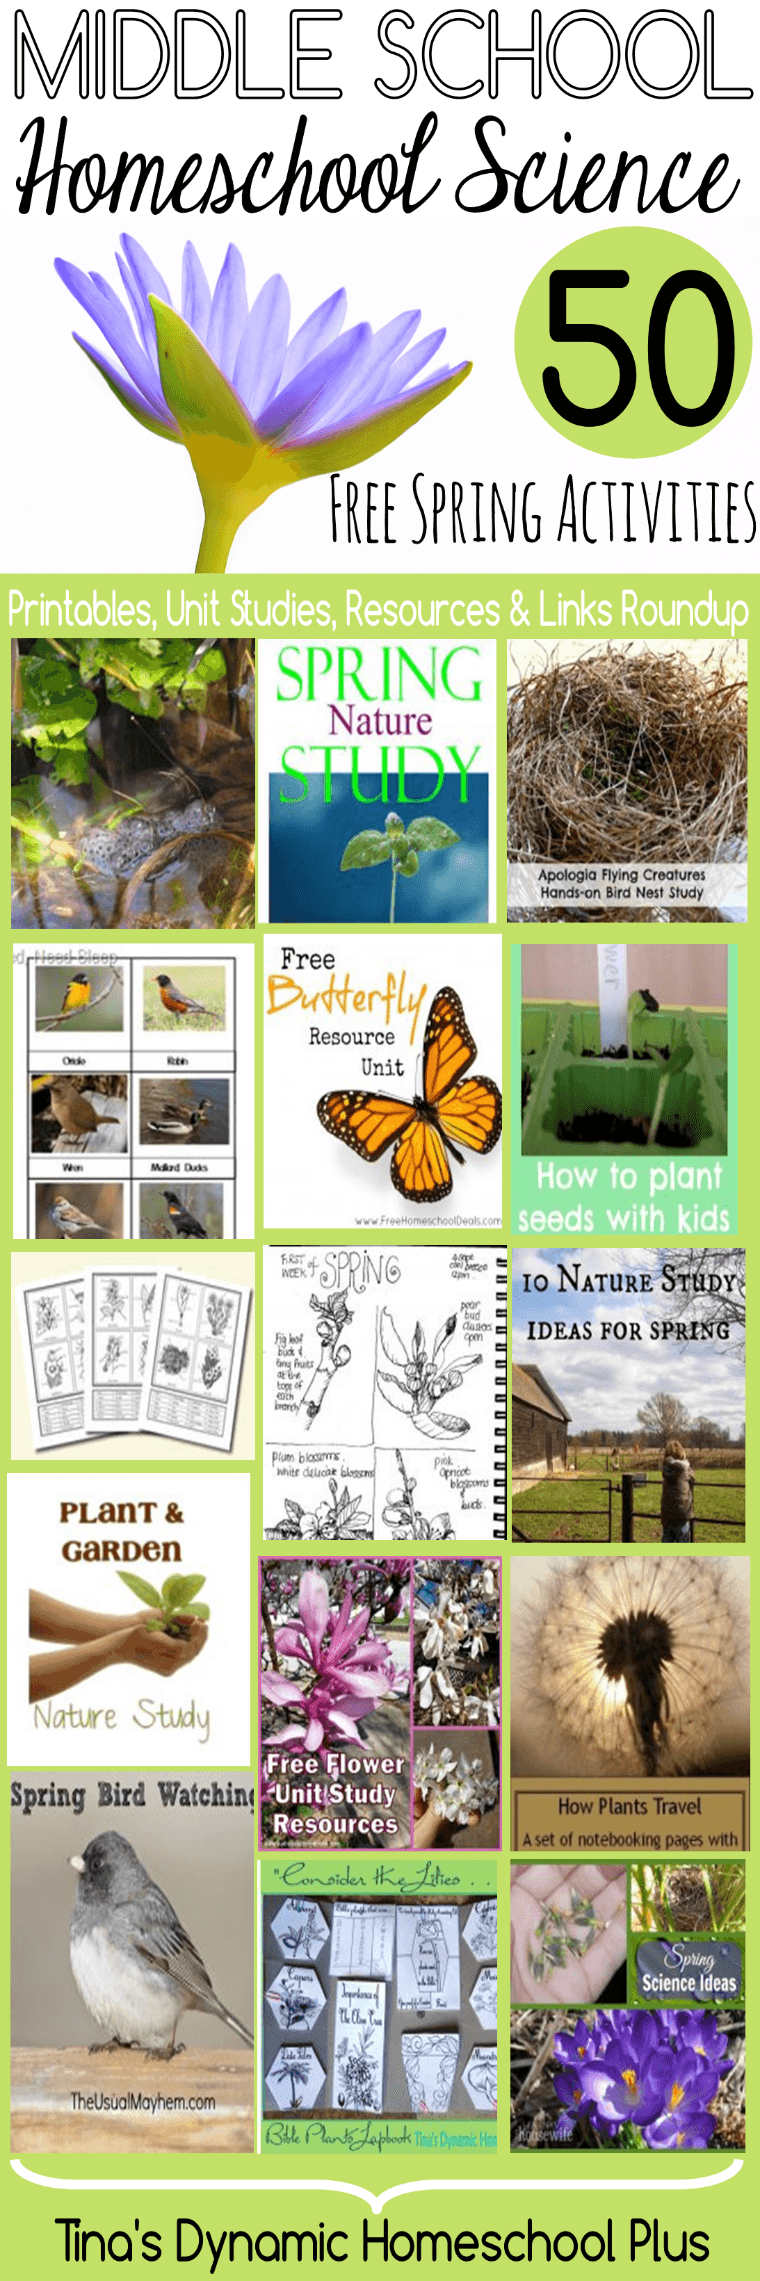 middle school homeschool science 50 free spring activities spring activities homeschool and. Black Bedroom Furniture Sets. Home Design Ideas